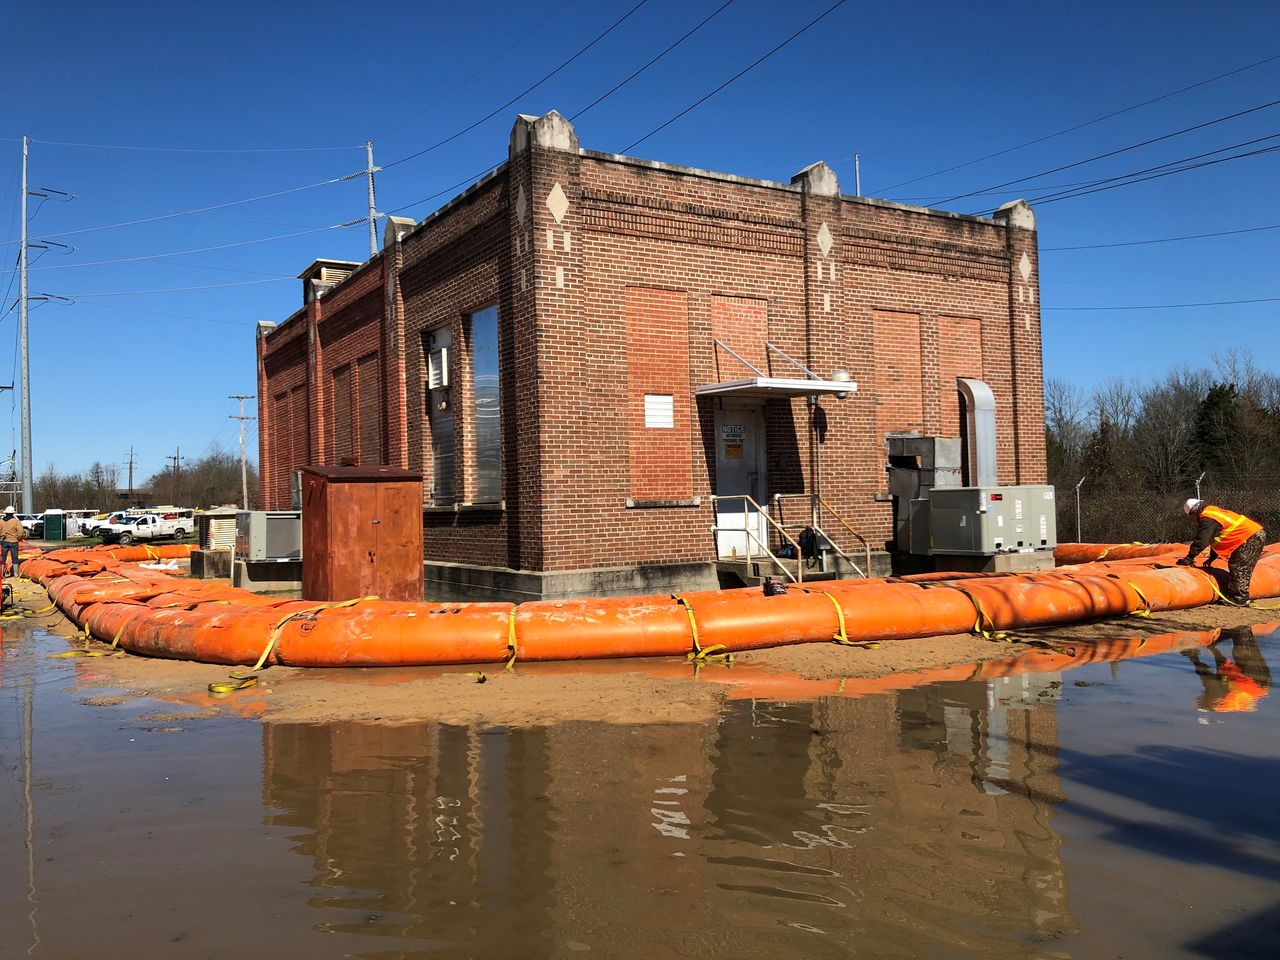 Crews built a tiger dam around the control house at the south Jackson substation to mitigate flooding issues. The substation has been de-entergized.